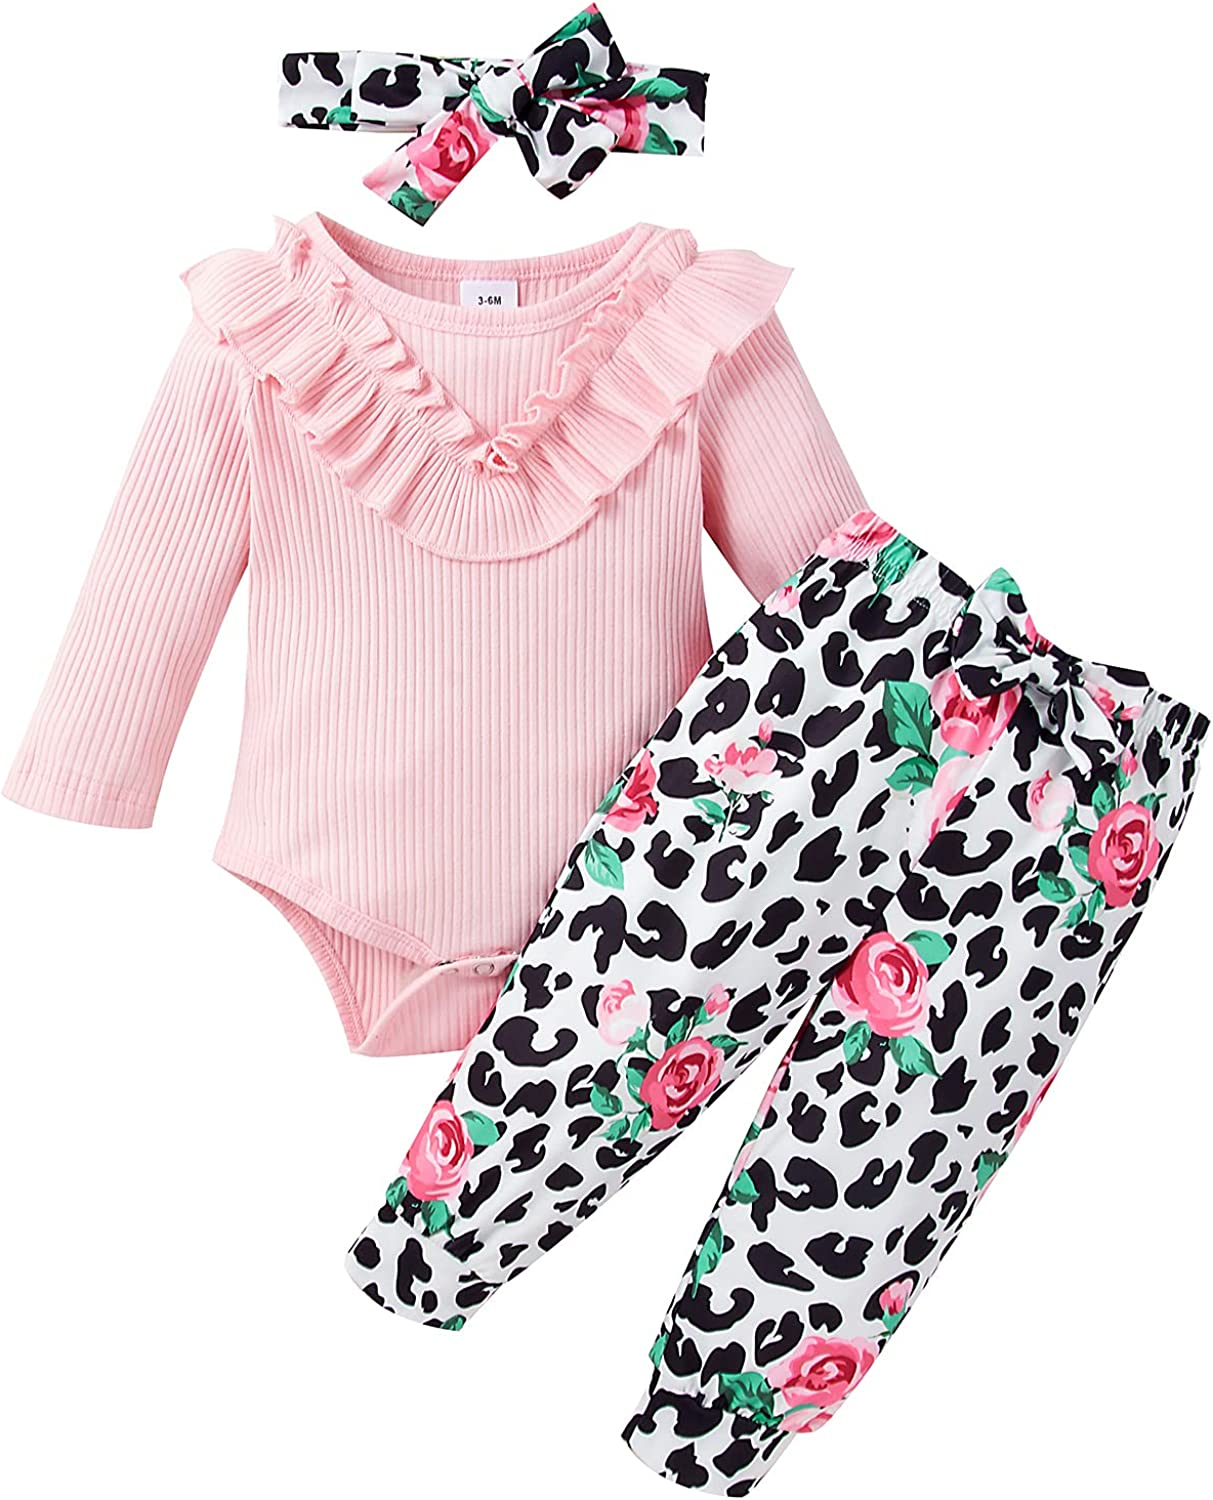 Newborn Infant Baby Girl Clothes Ruffle Long Sleeve Romper Floral Pant Headband Fall Ribbed Outfit Set